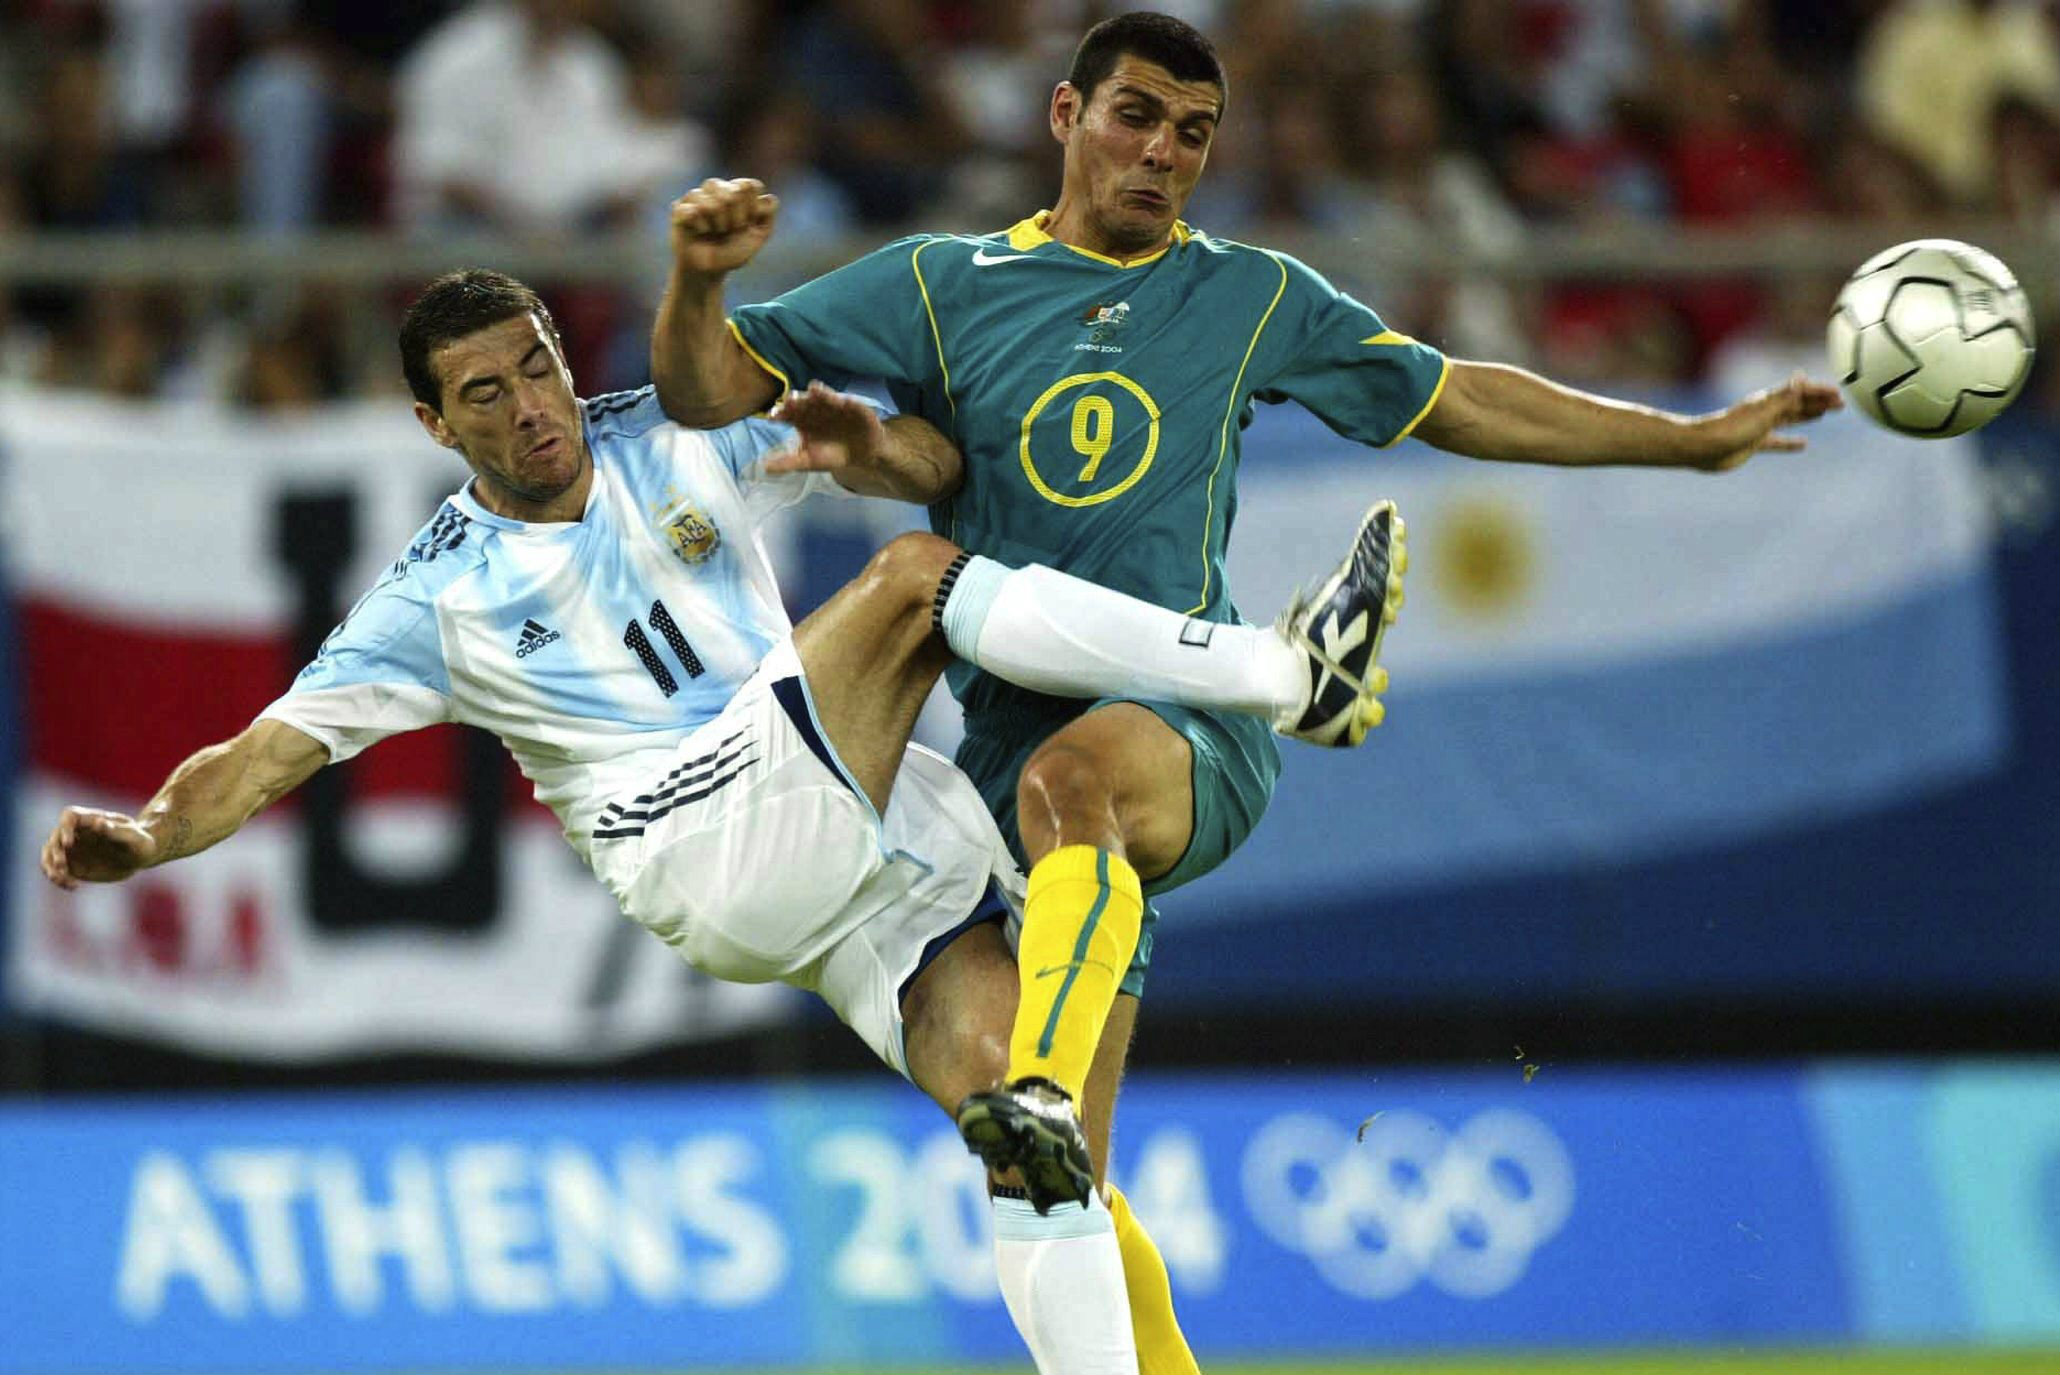 John Aloisi in action against Argentina at the 2004 Olympics